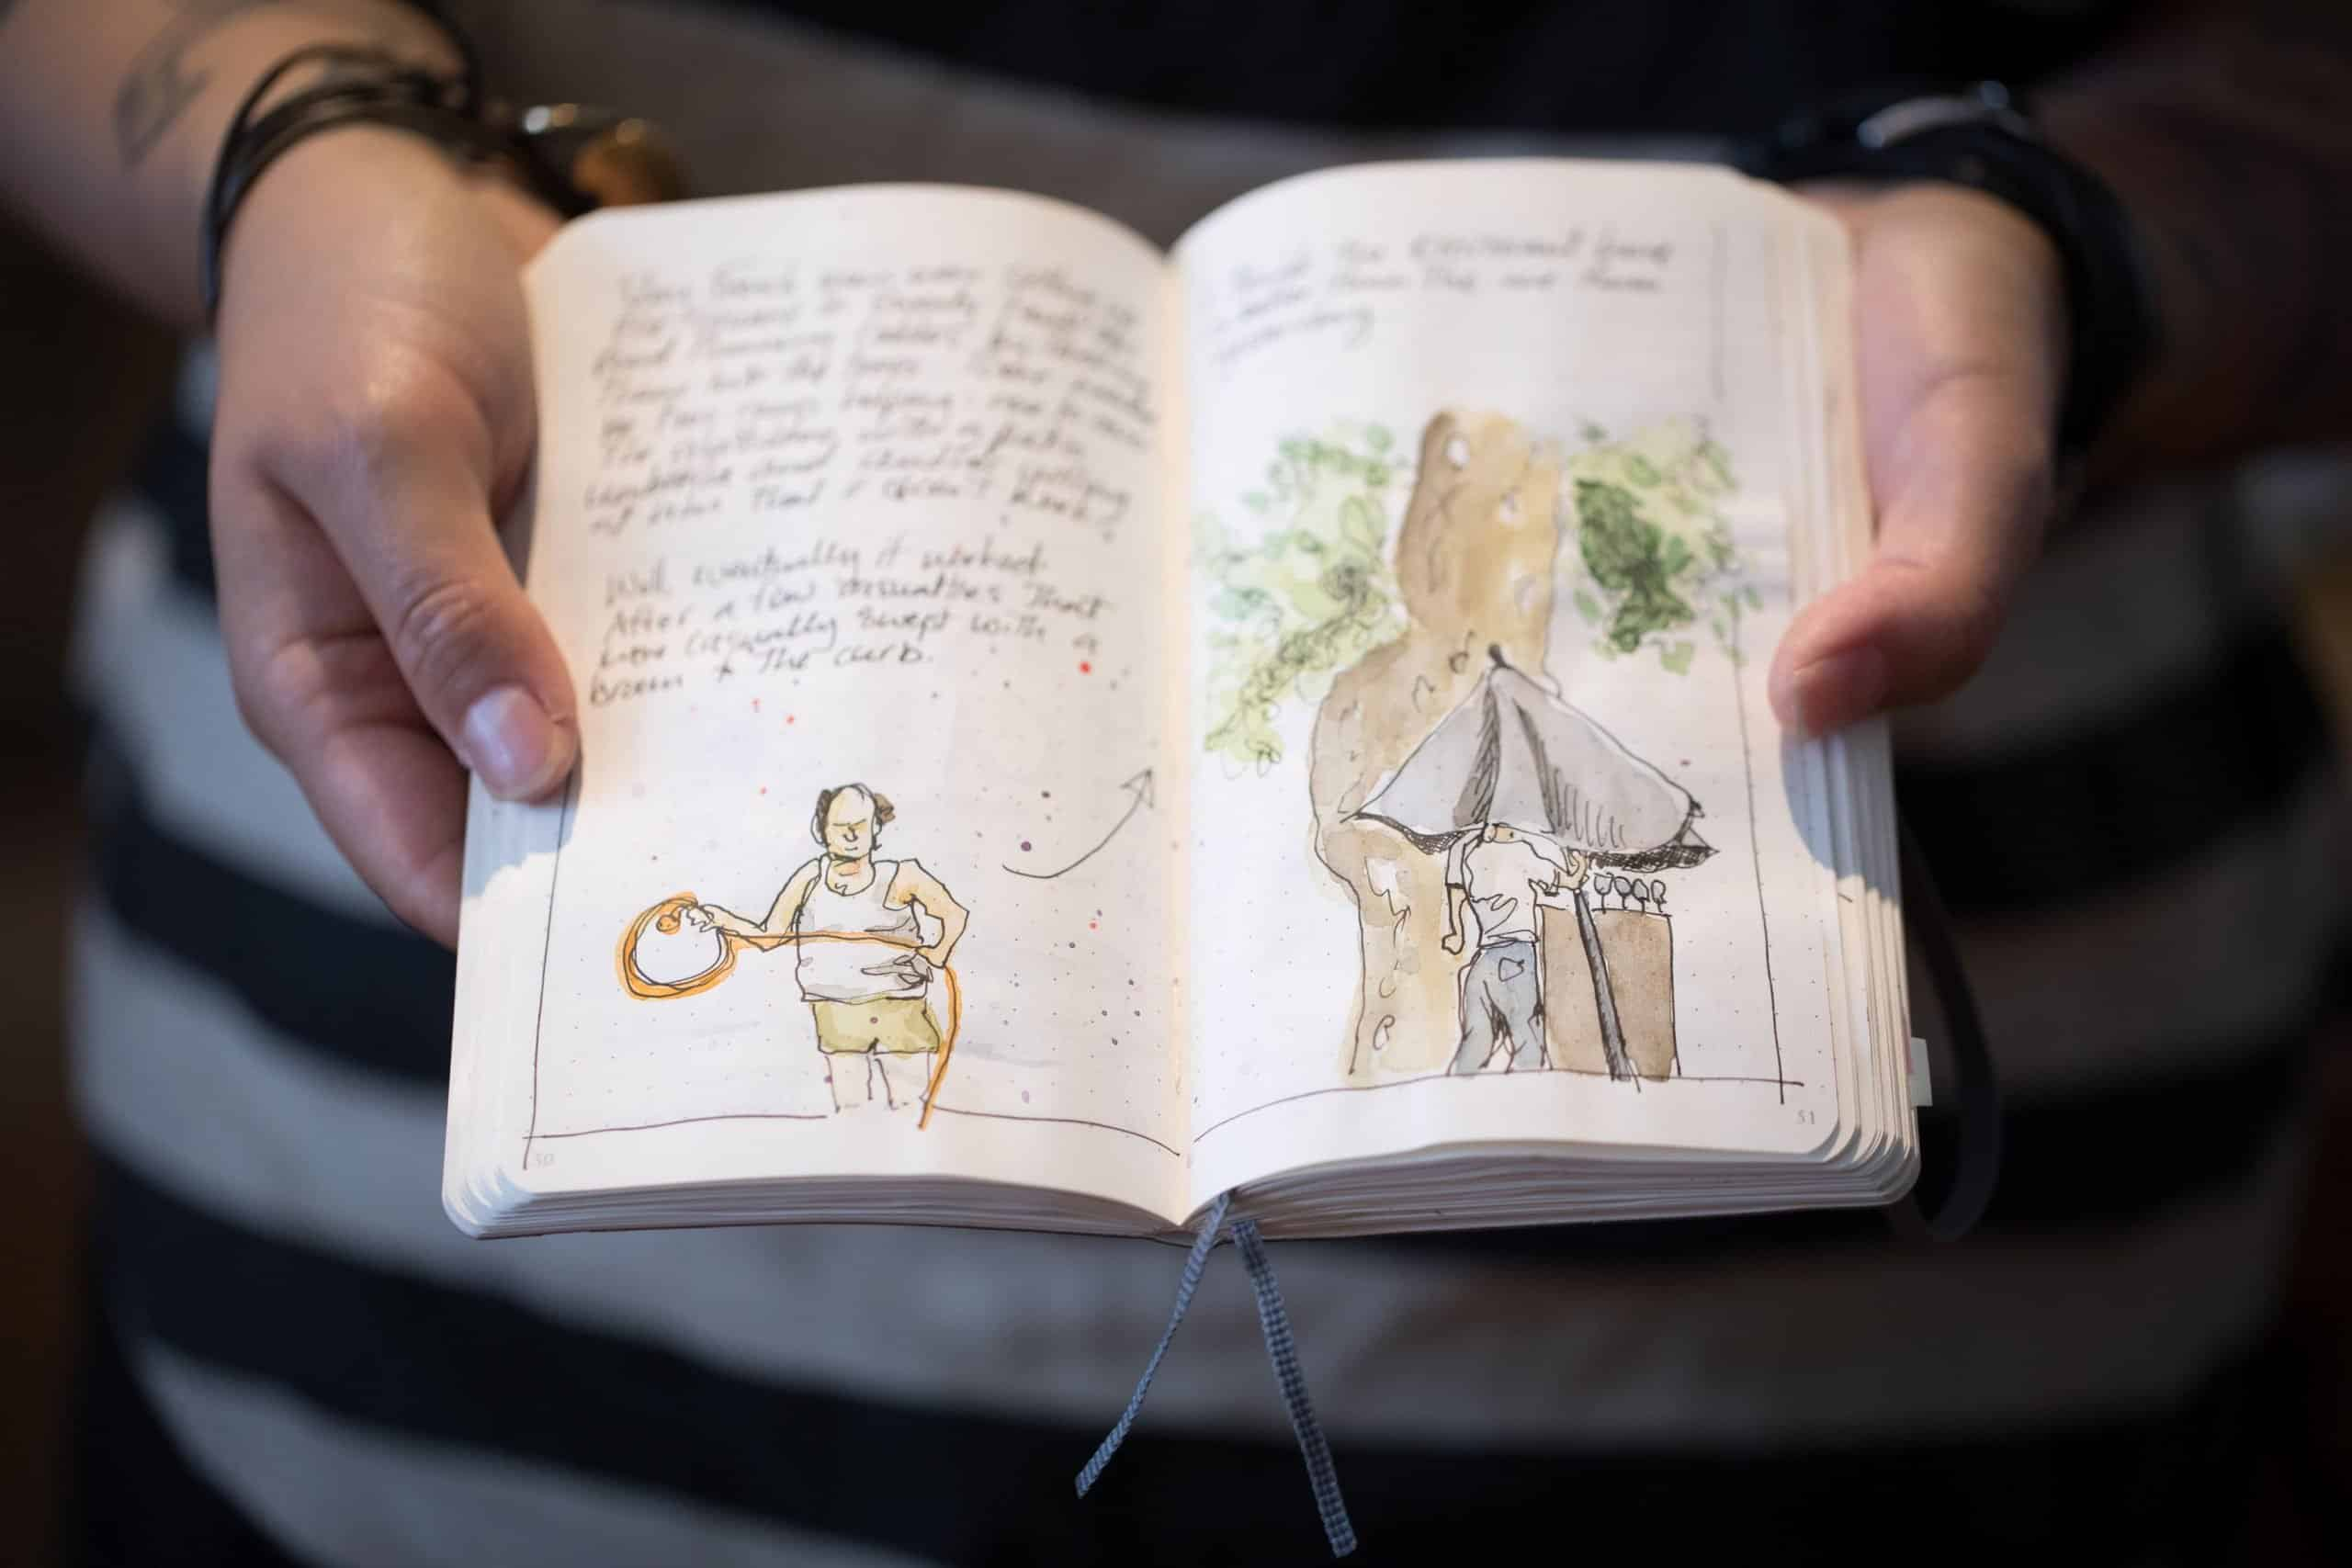 Schmoo Theune holding a drawing book